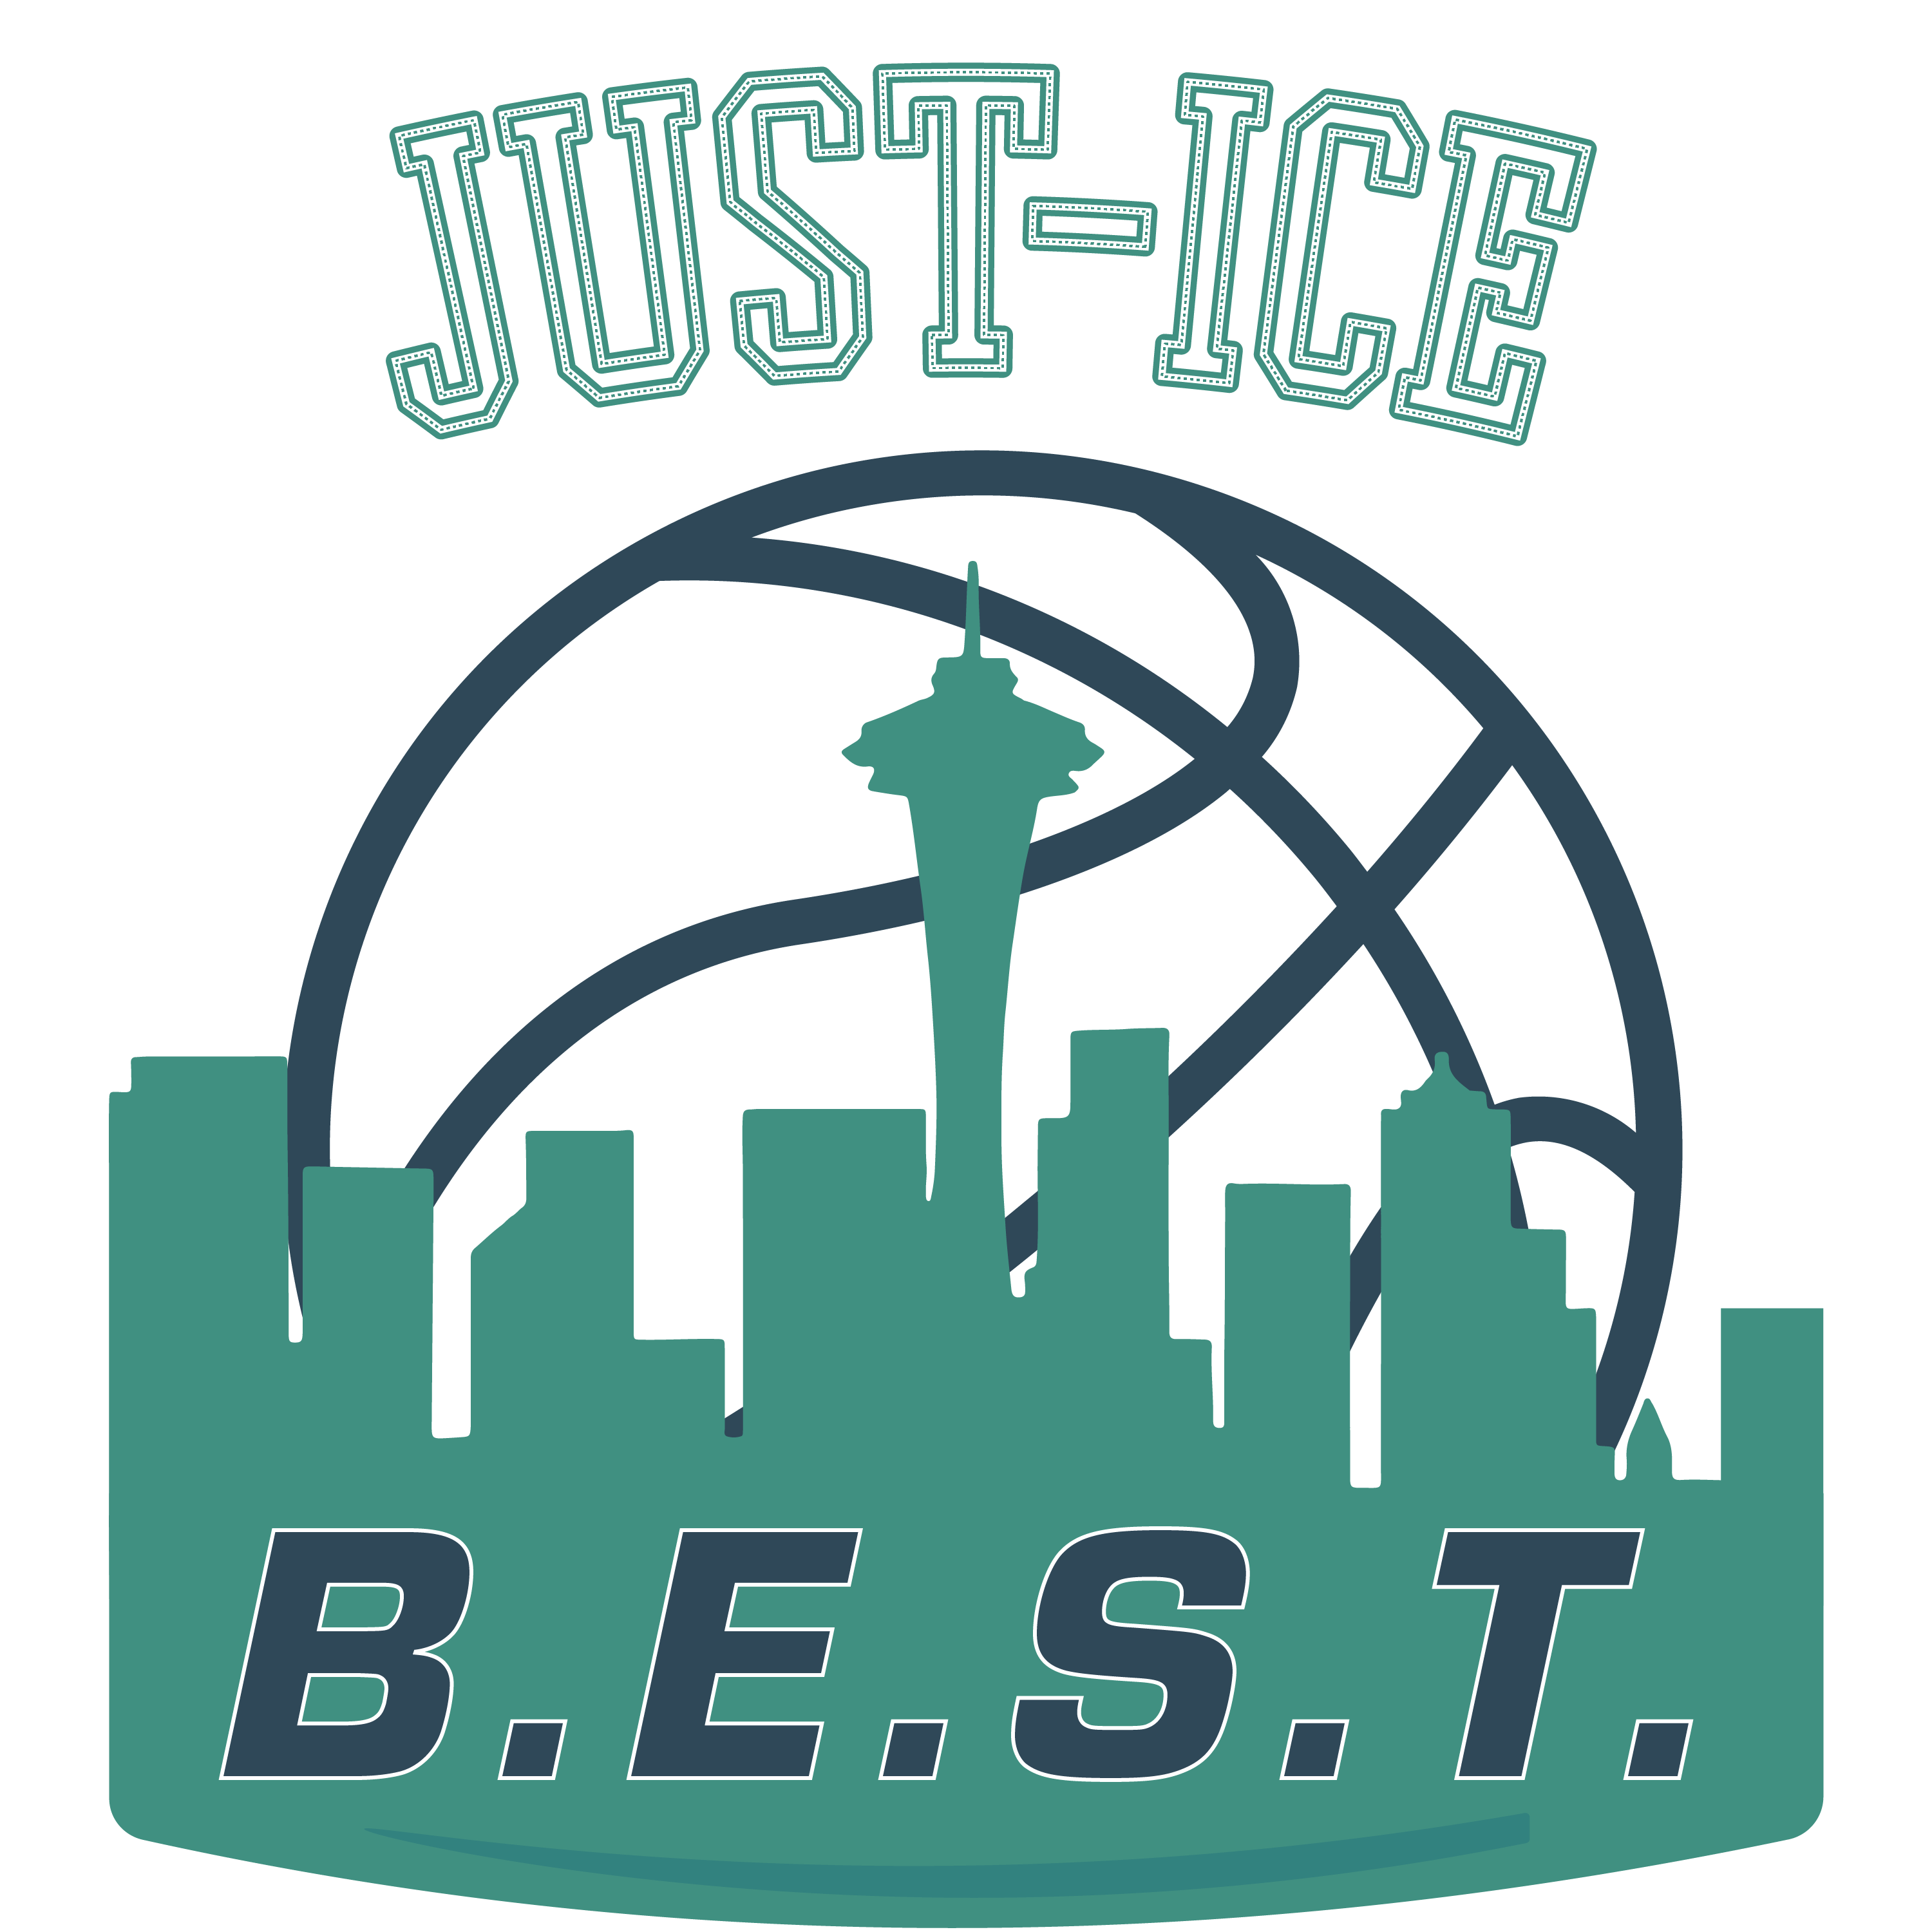 An icon depicting elite basketball training in Seattle